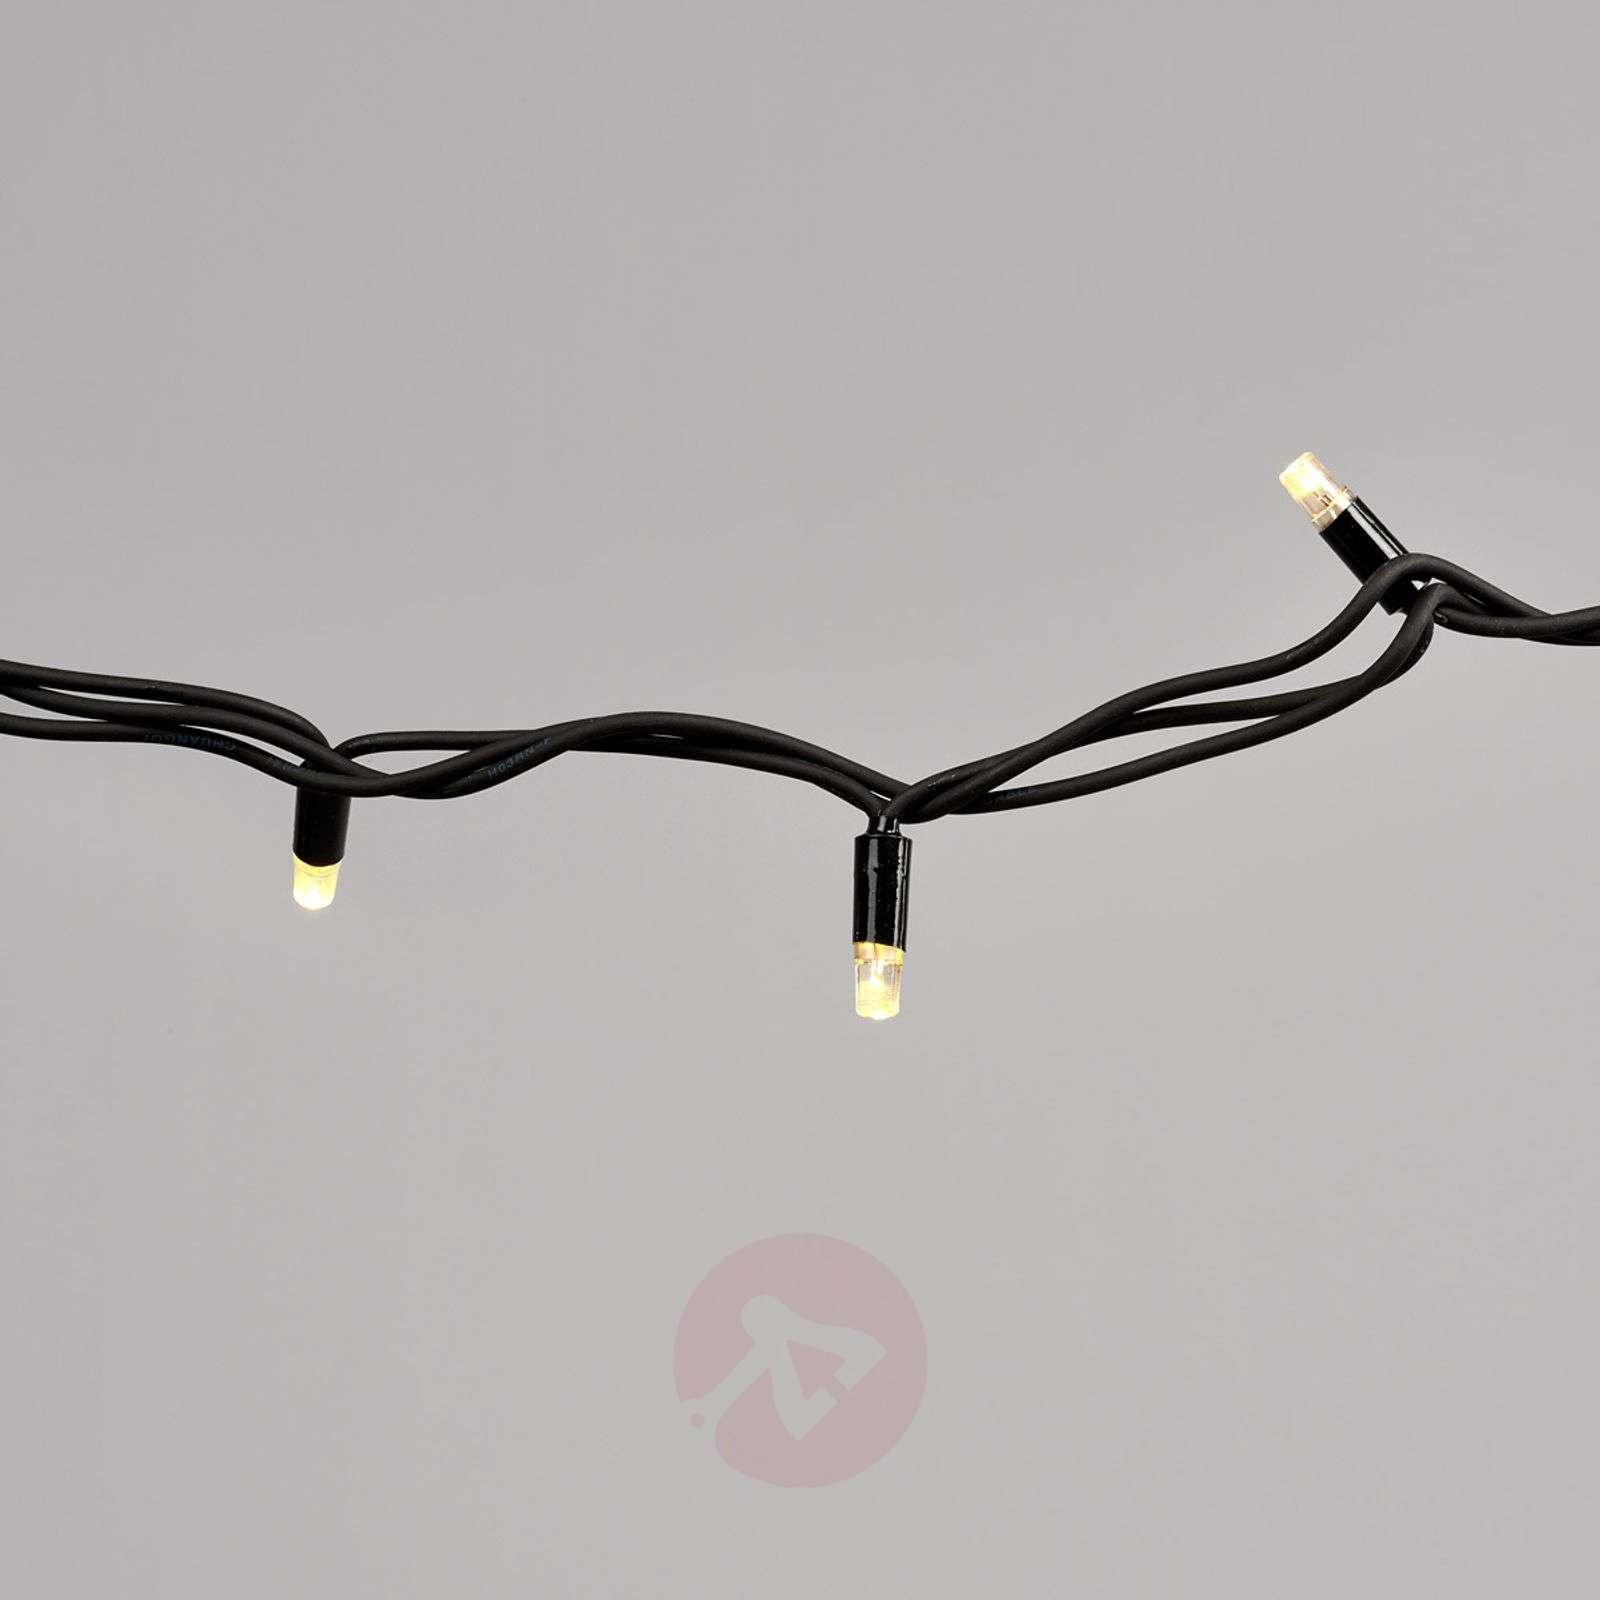 Guirlande lumineuse LED dextension Chrissline-6507402-01